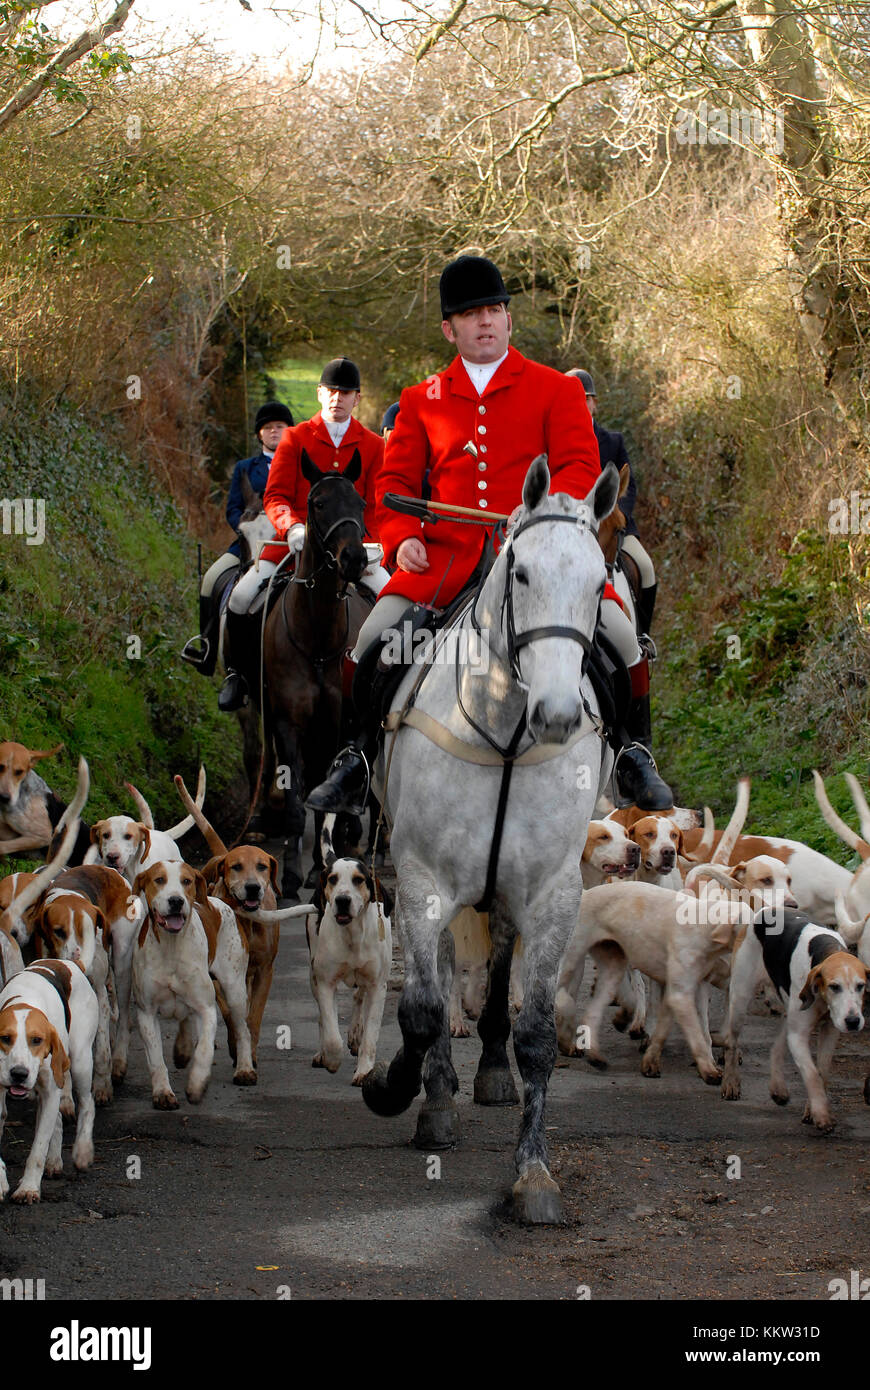 A huntsman dressed in a red jacket leading a pack of hounds a the local village hunt down a green wooded country - Stock Image